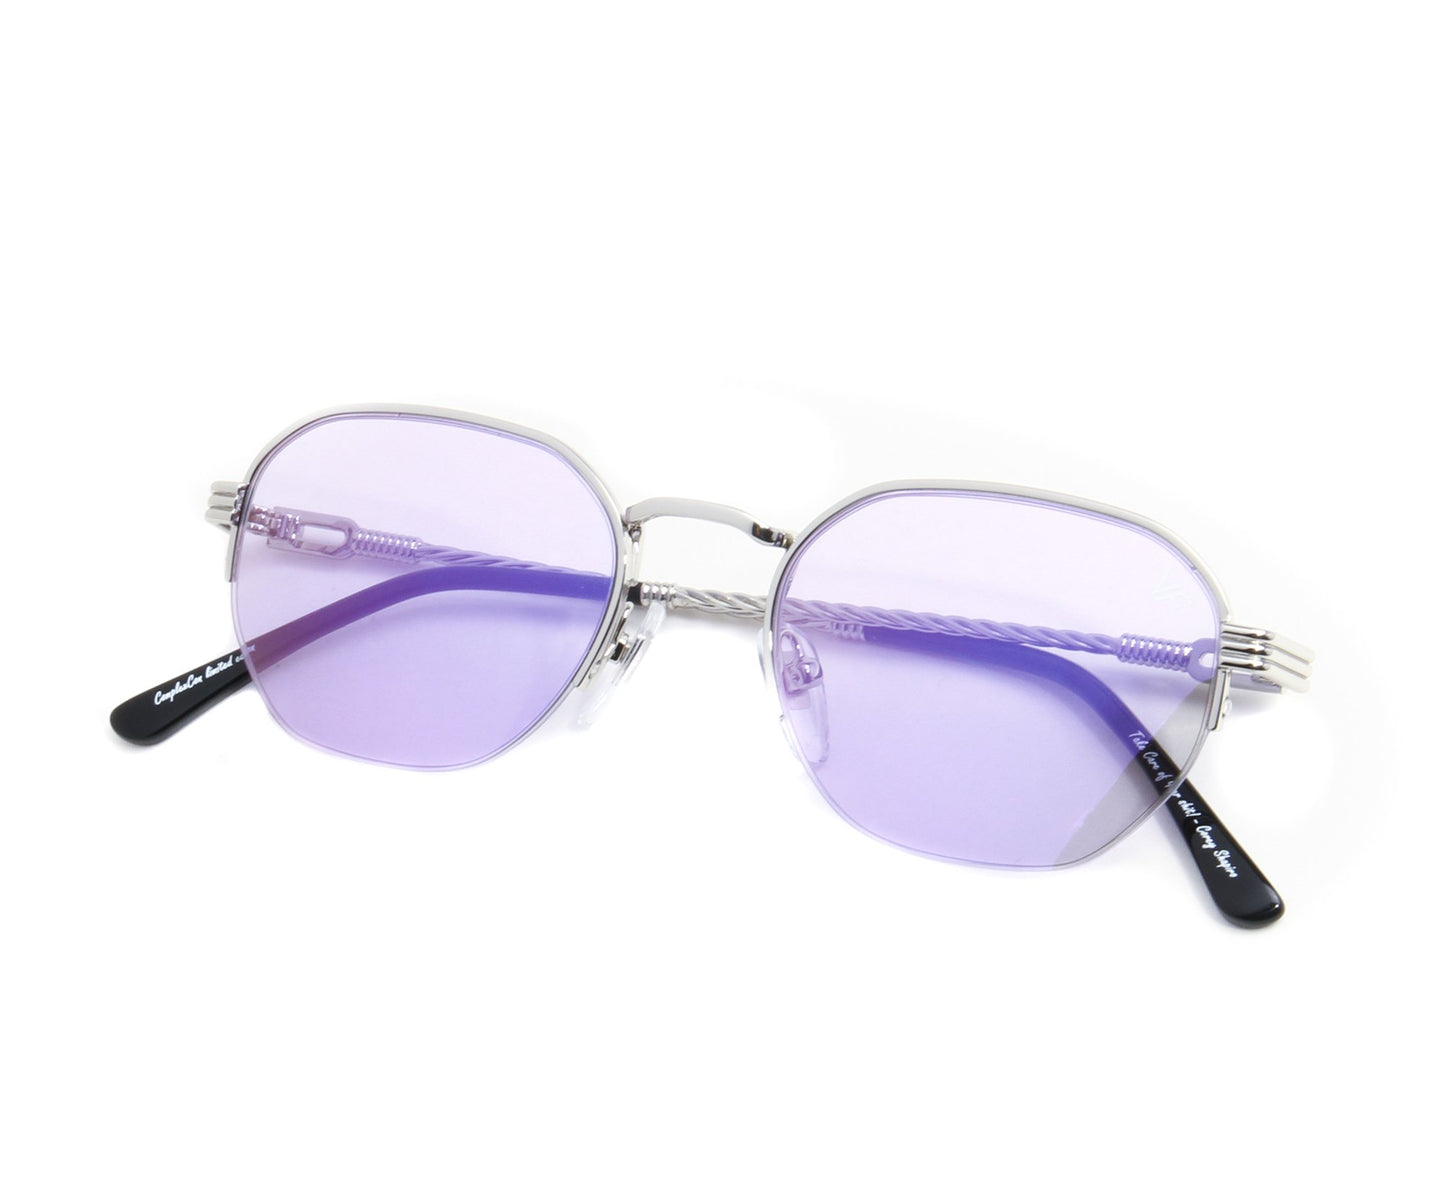 VF Detroit Player Half Rim 18KT White Gold (Smoke Flash Purple) Thumb, VF by Vintage Frames , glasses frames, eyeglasses online, eyeglass frames, mens glasses, womens glasses, buy glasses online, designer eyeglasses, vintage sunglasses, retro sunglasses, vintage glasses, sunglass, eyeglass, glasses, lens, vintage frames company, vf